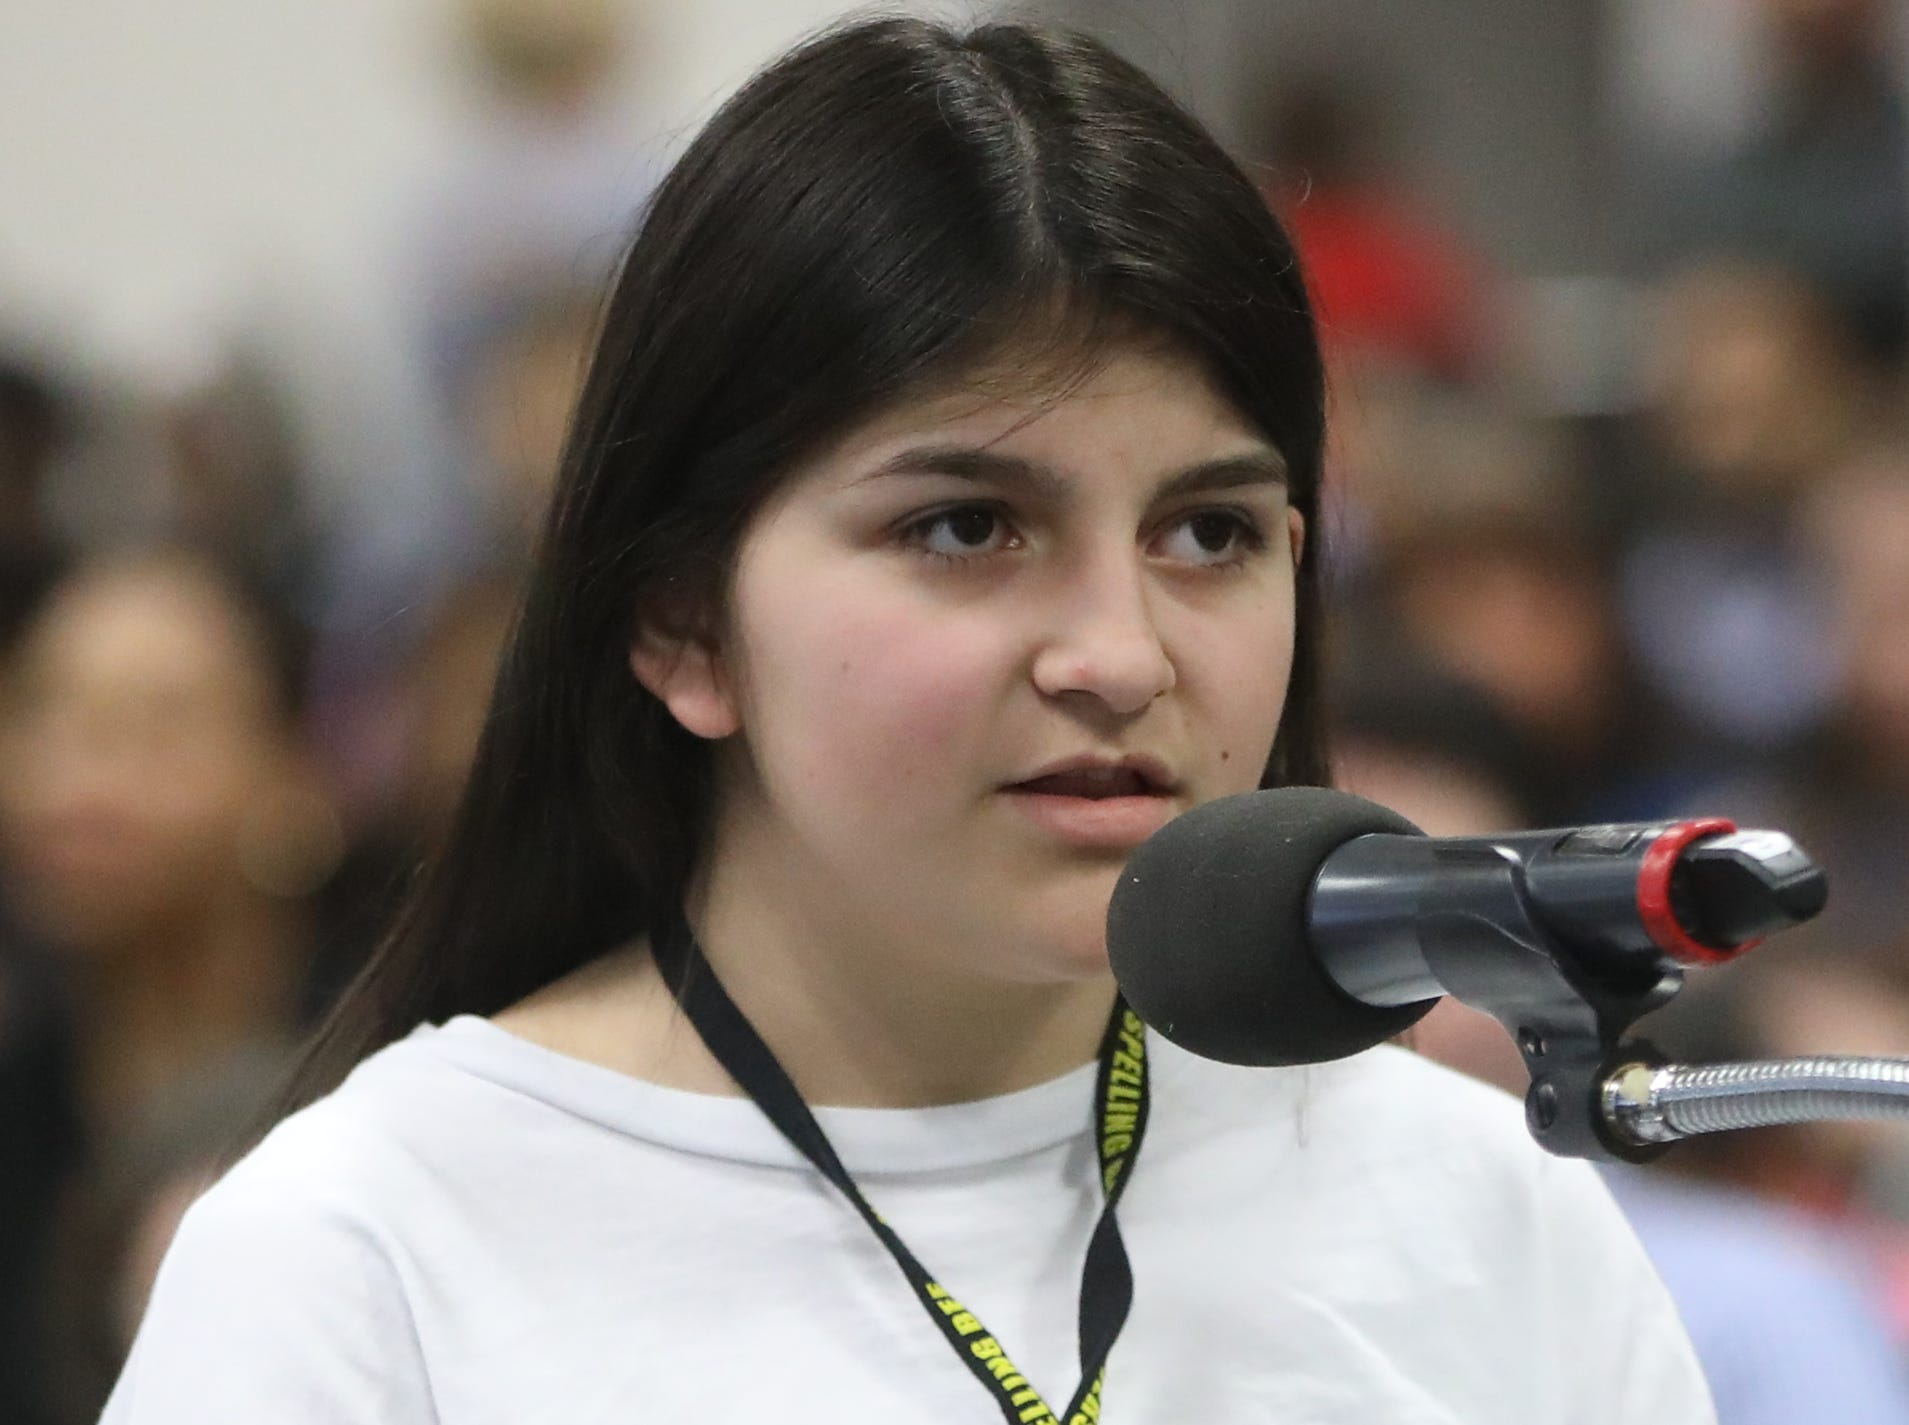 Riley Osmanoglu, of Wanaque, competes in the first round of the 2019 North Jersey Spelling Bee, in Paramus. Thursday, March 14, 2019